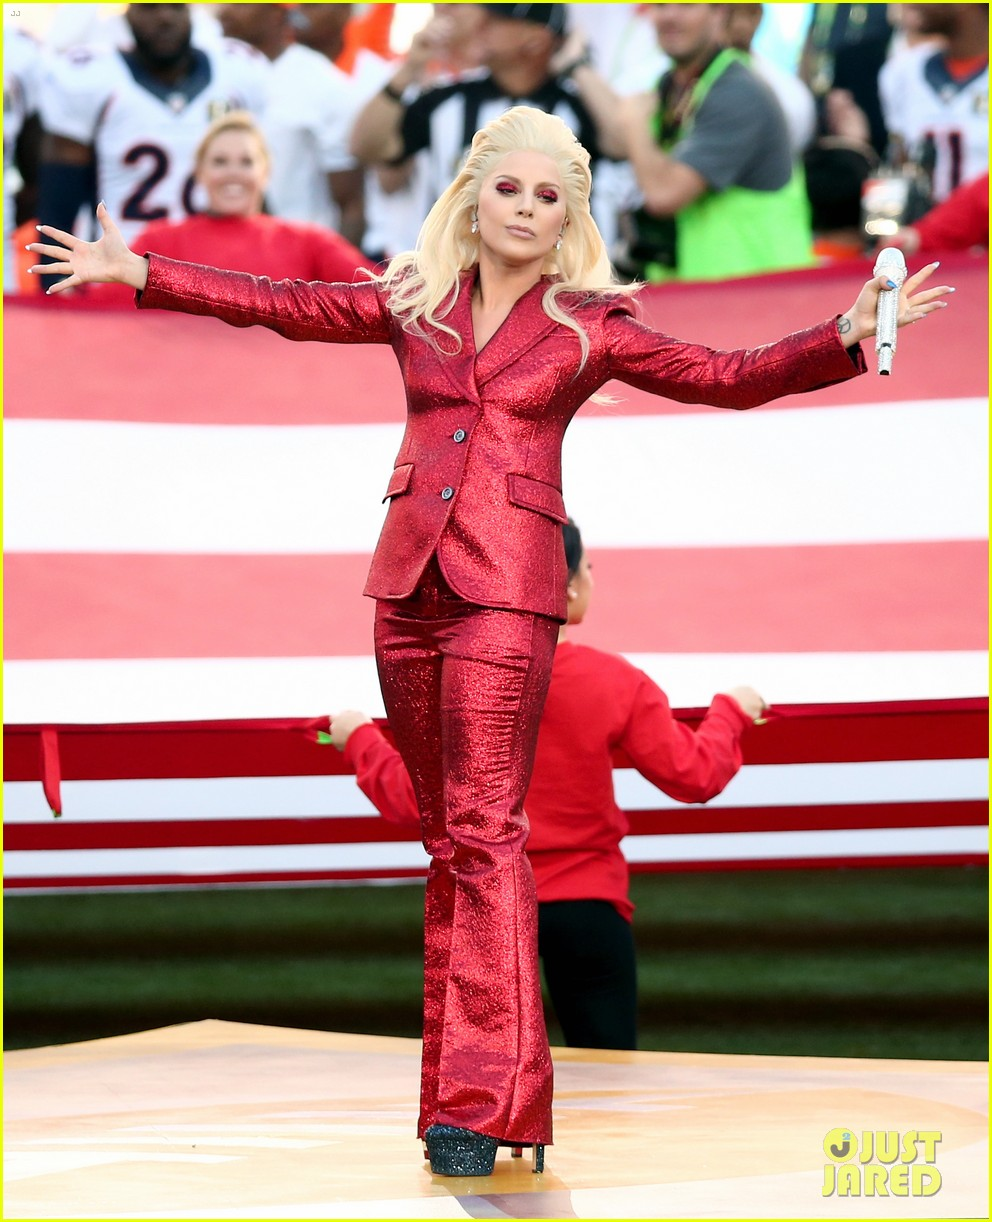 lady-gaga-national-anthem-super-bowl-201